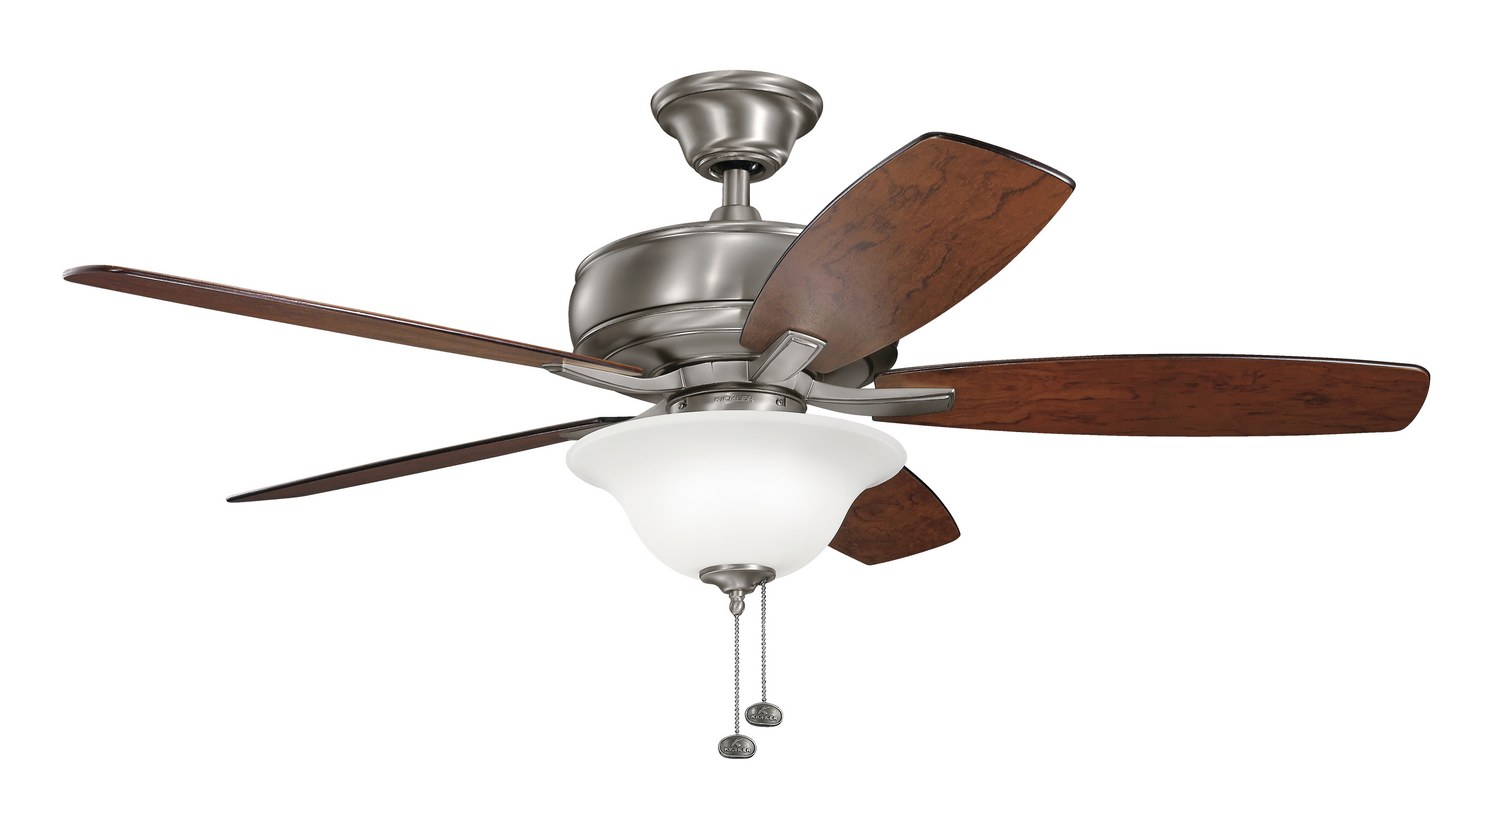 52 inchCeiling Fan from the Select collection by Kichler 330248BAP